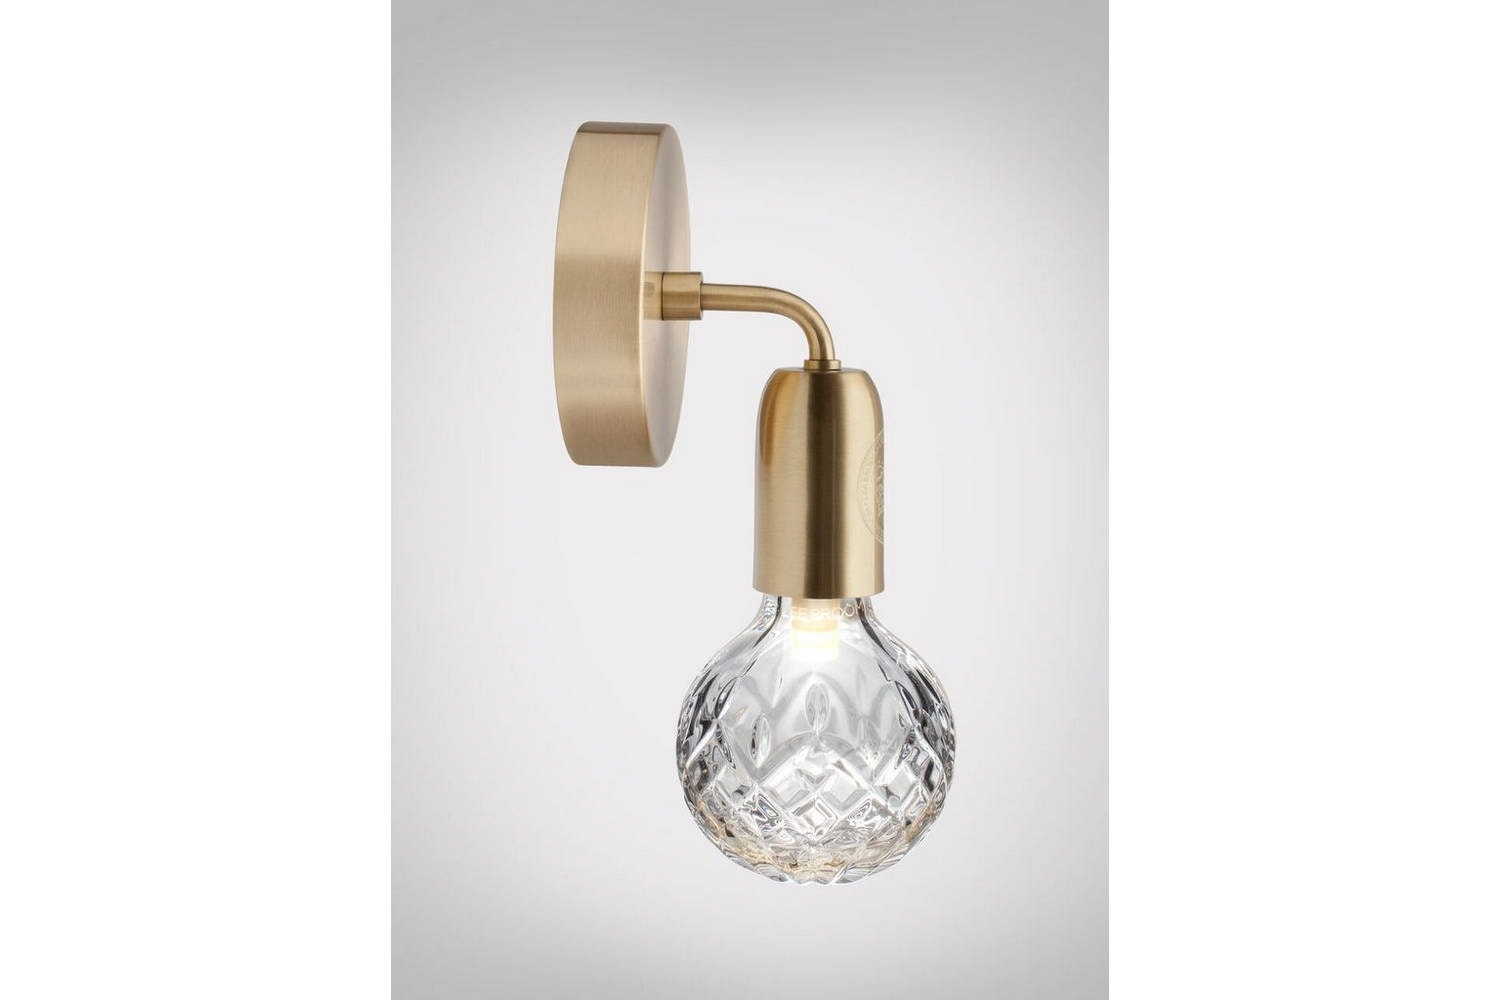 Clear Crystal Bulb Wall Lamp - Brushed Brass by Lee Broom